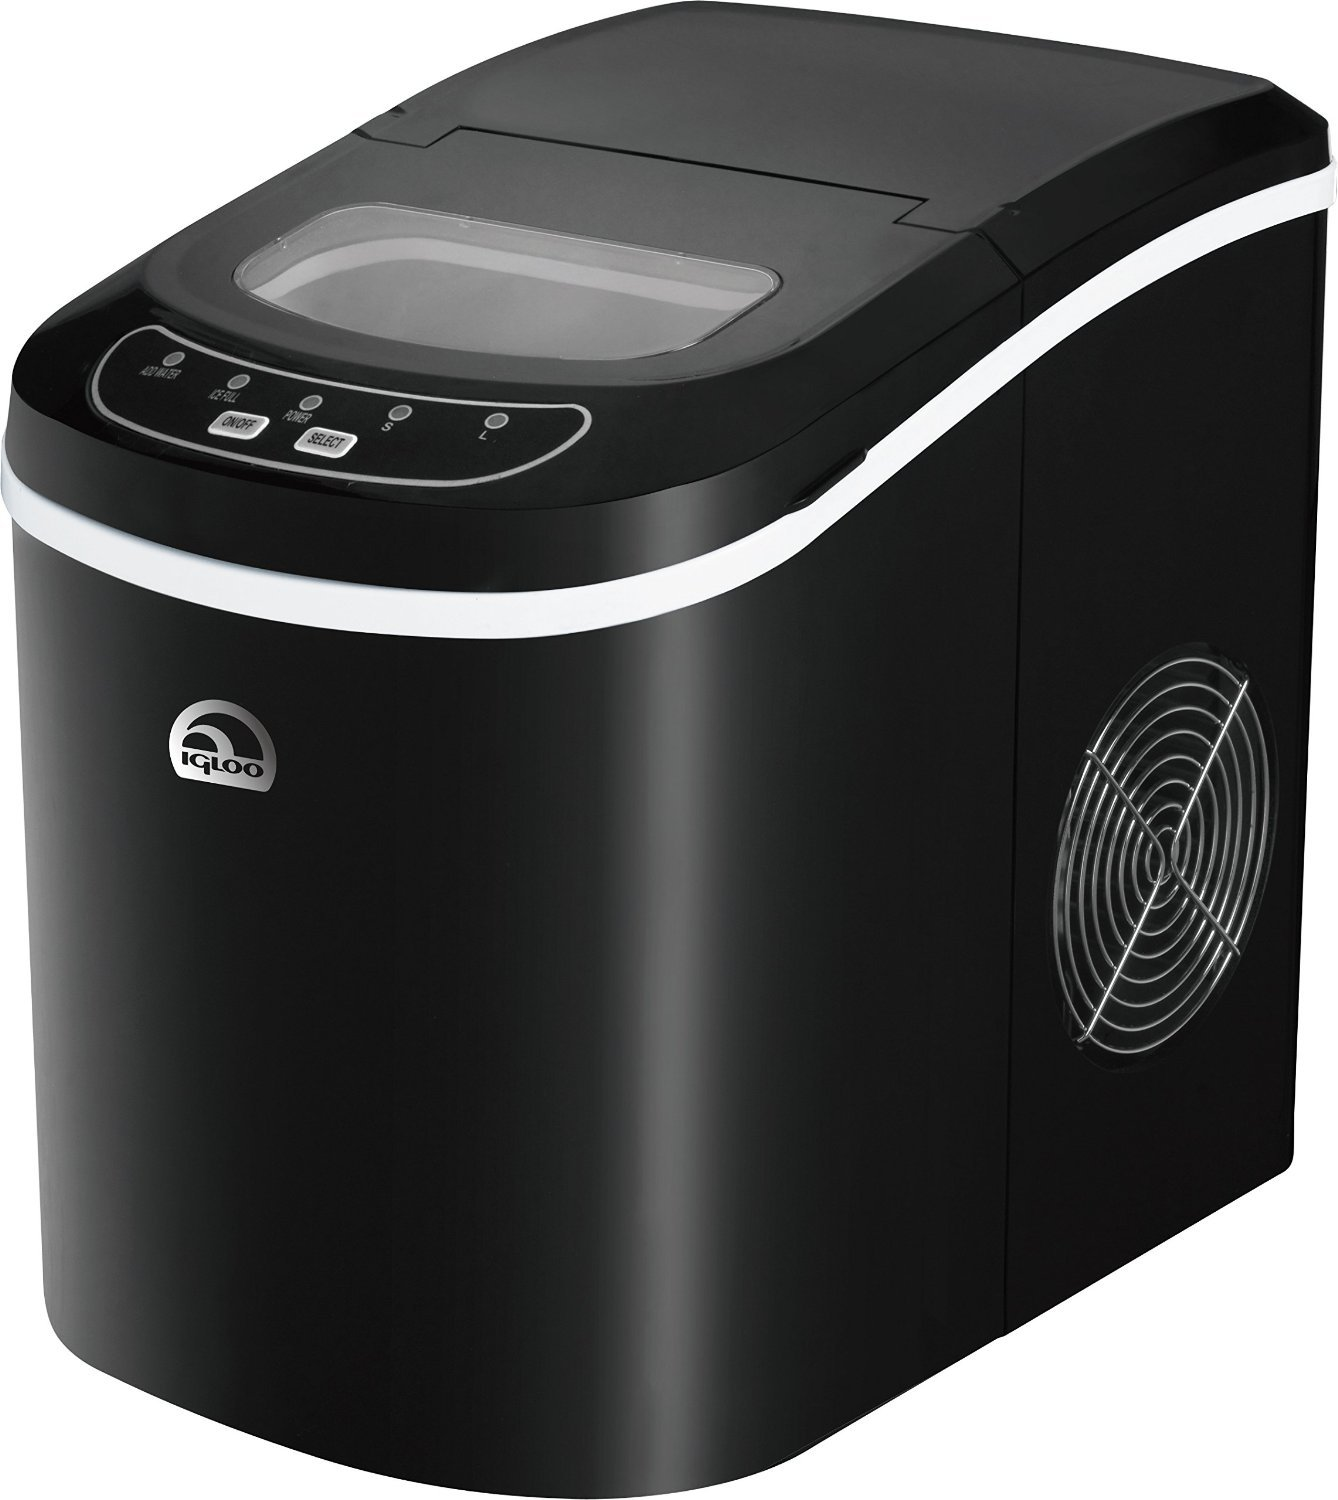 Igloo Countertop Compact 26 lb. Portable Freestanding Ice Maker, Black (Certified Refurbished)